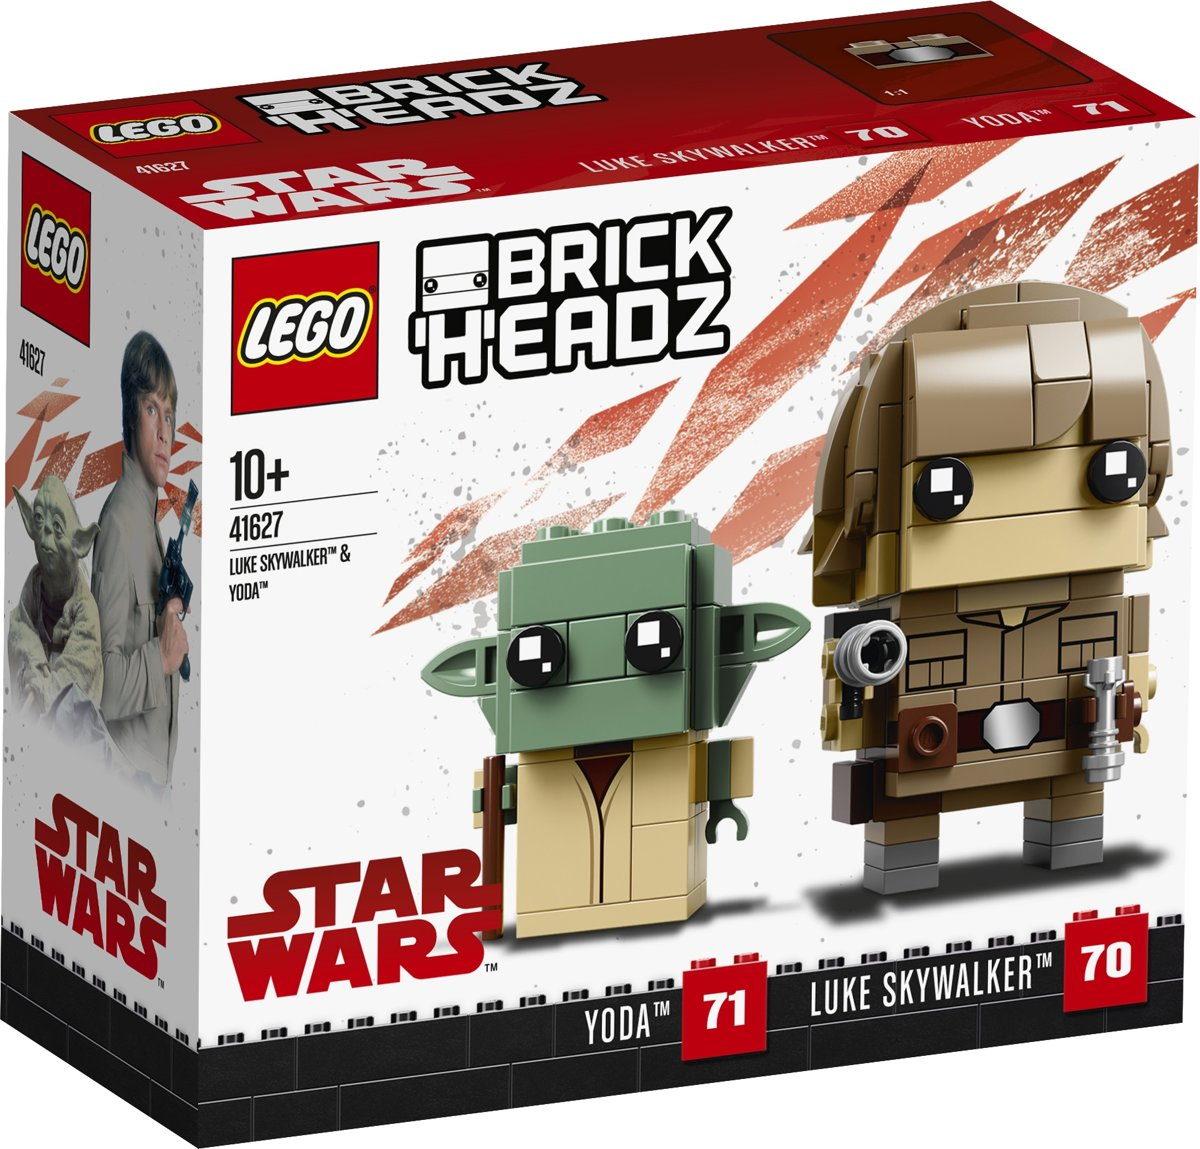 LEGO BrickHeadz Luke Skywalker & Yoda - 41627